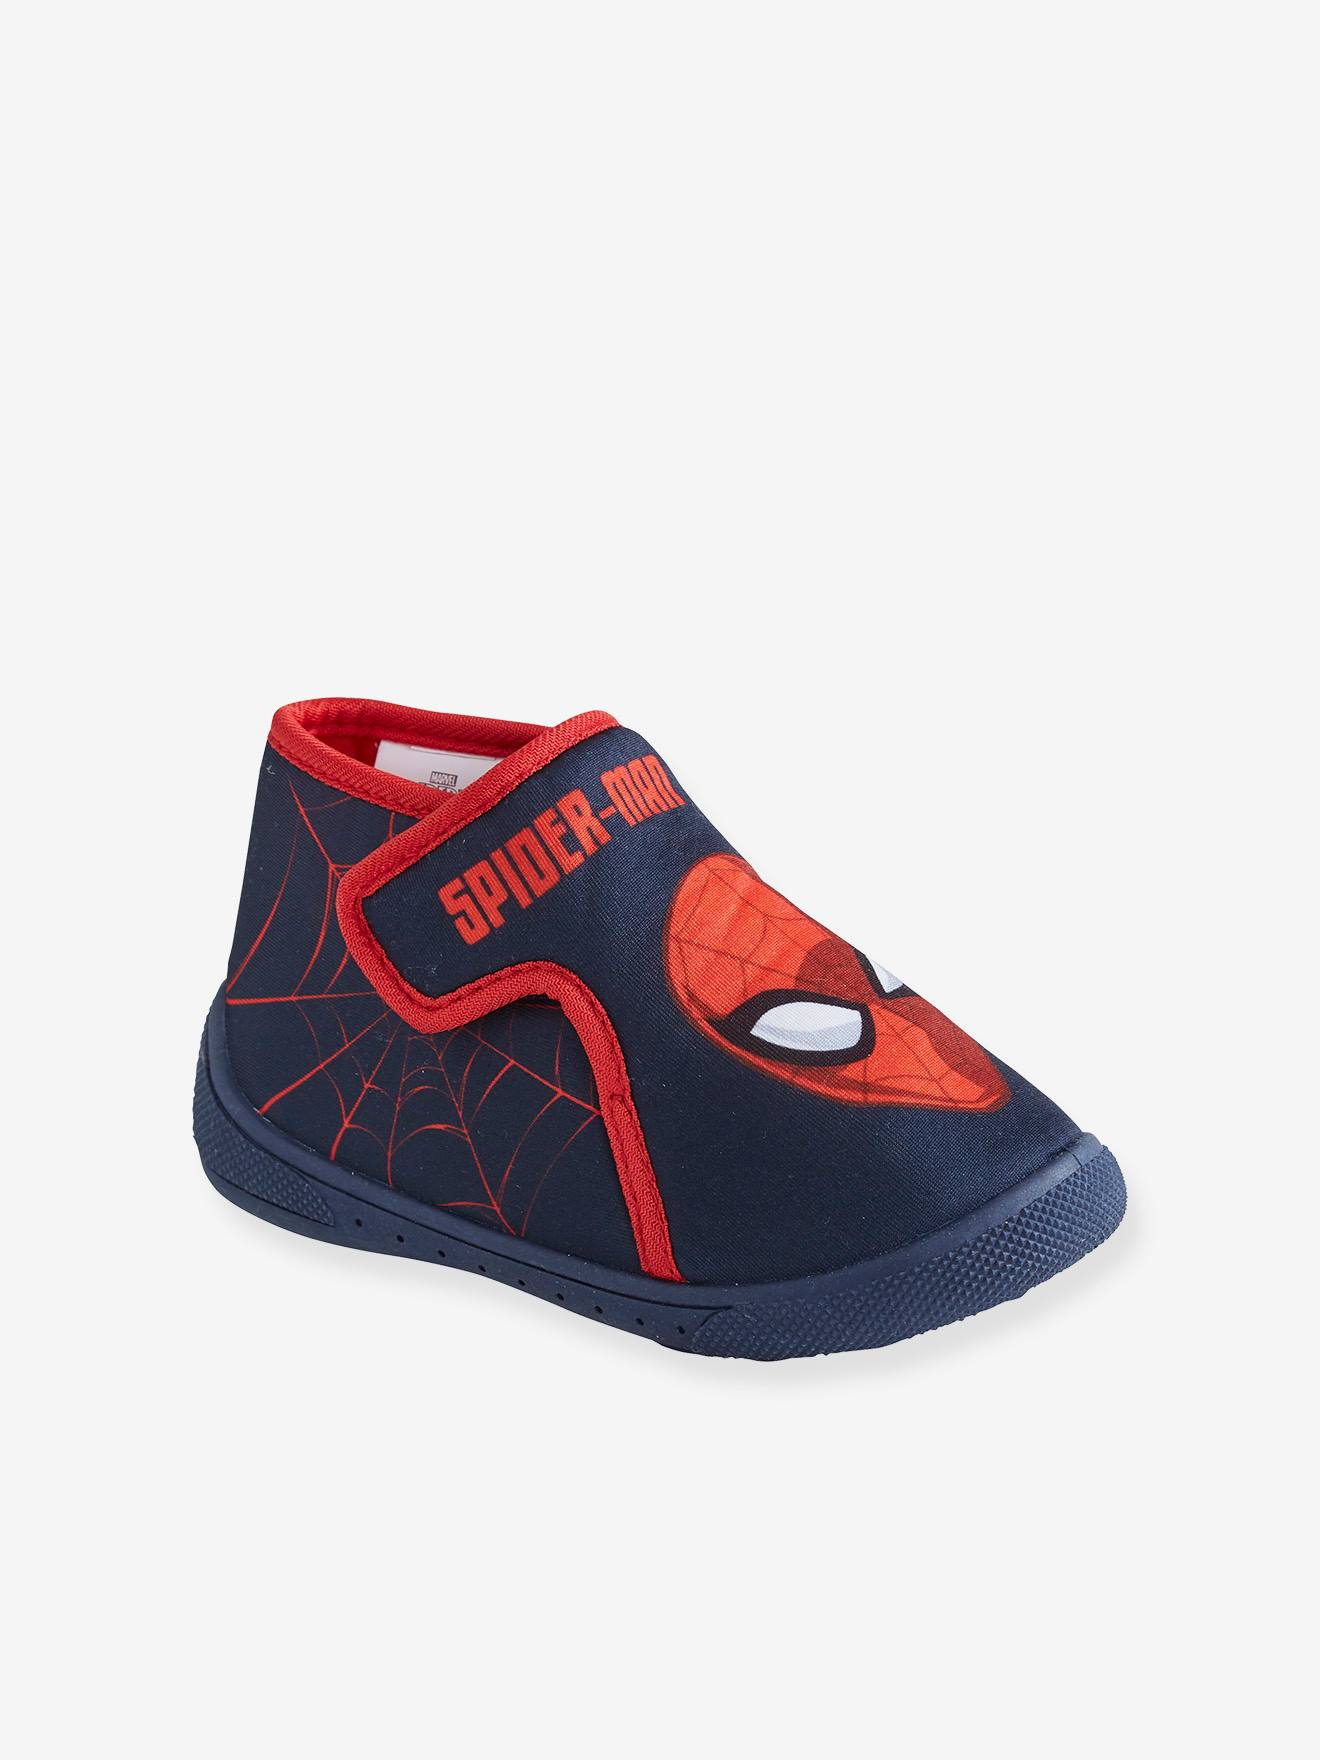 Chaussons antid/érapants Spiderman